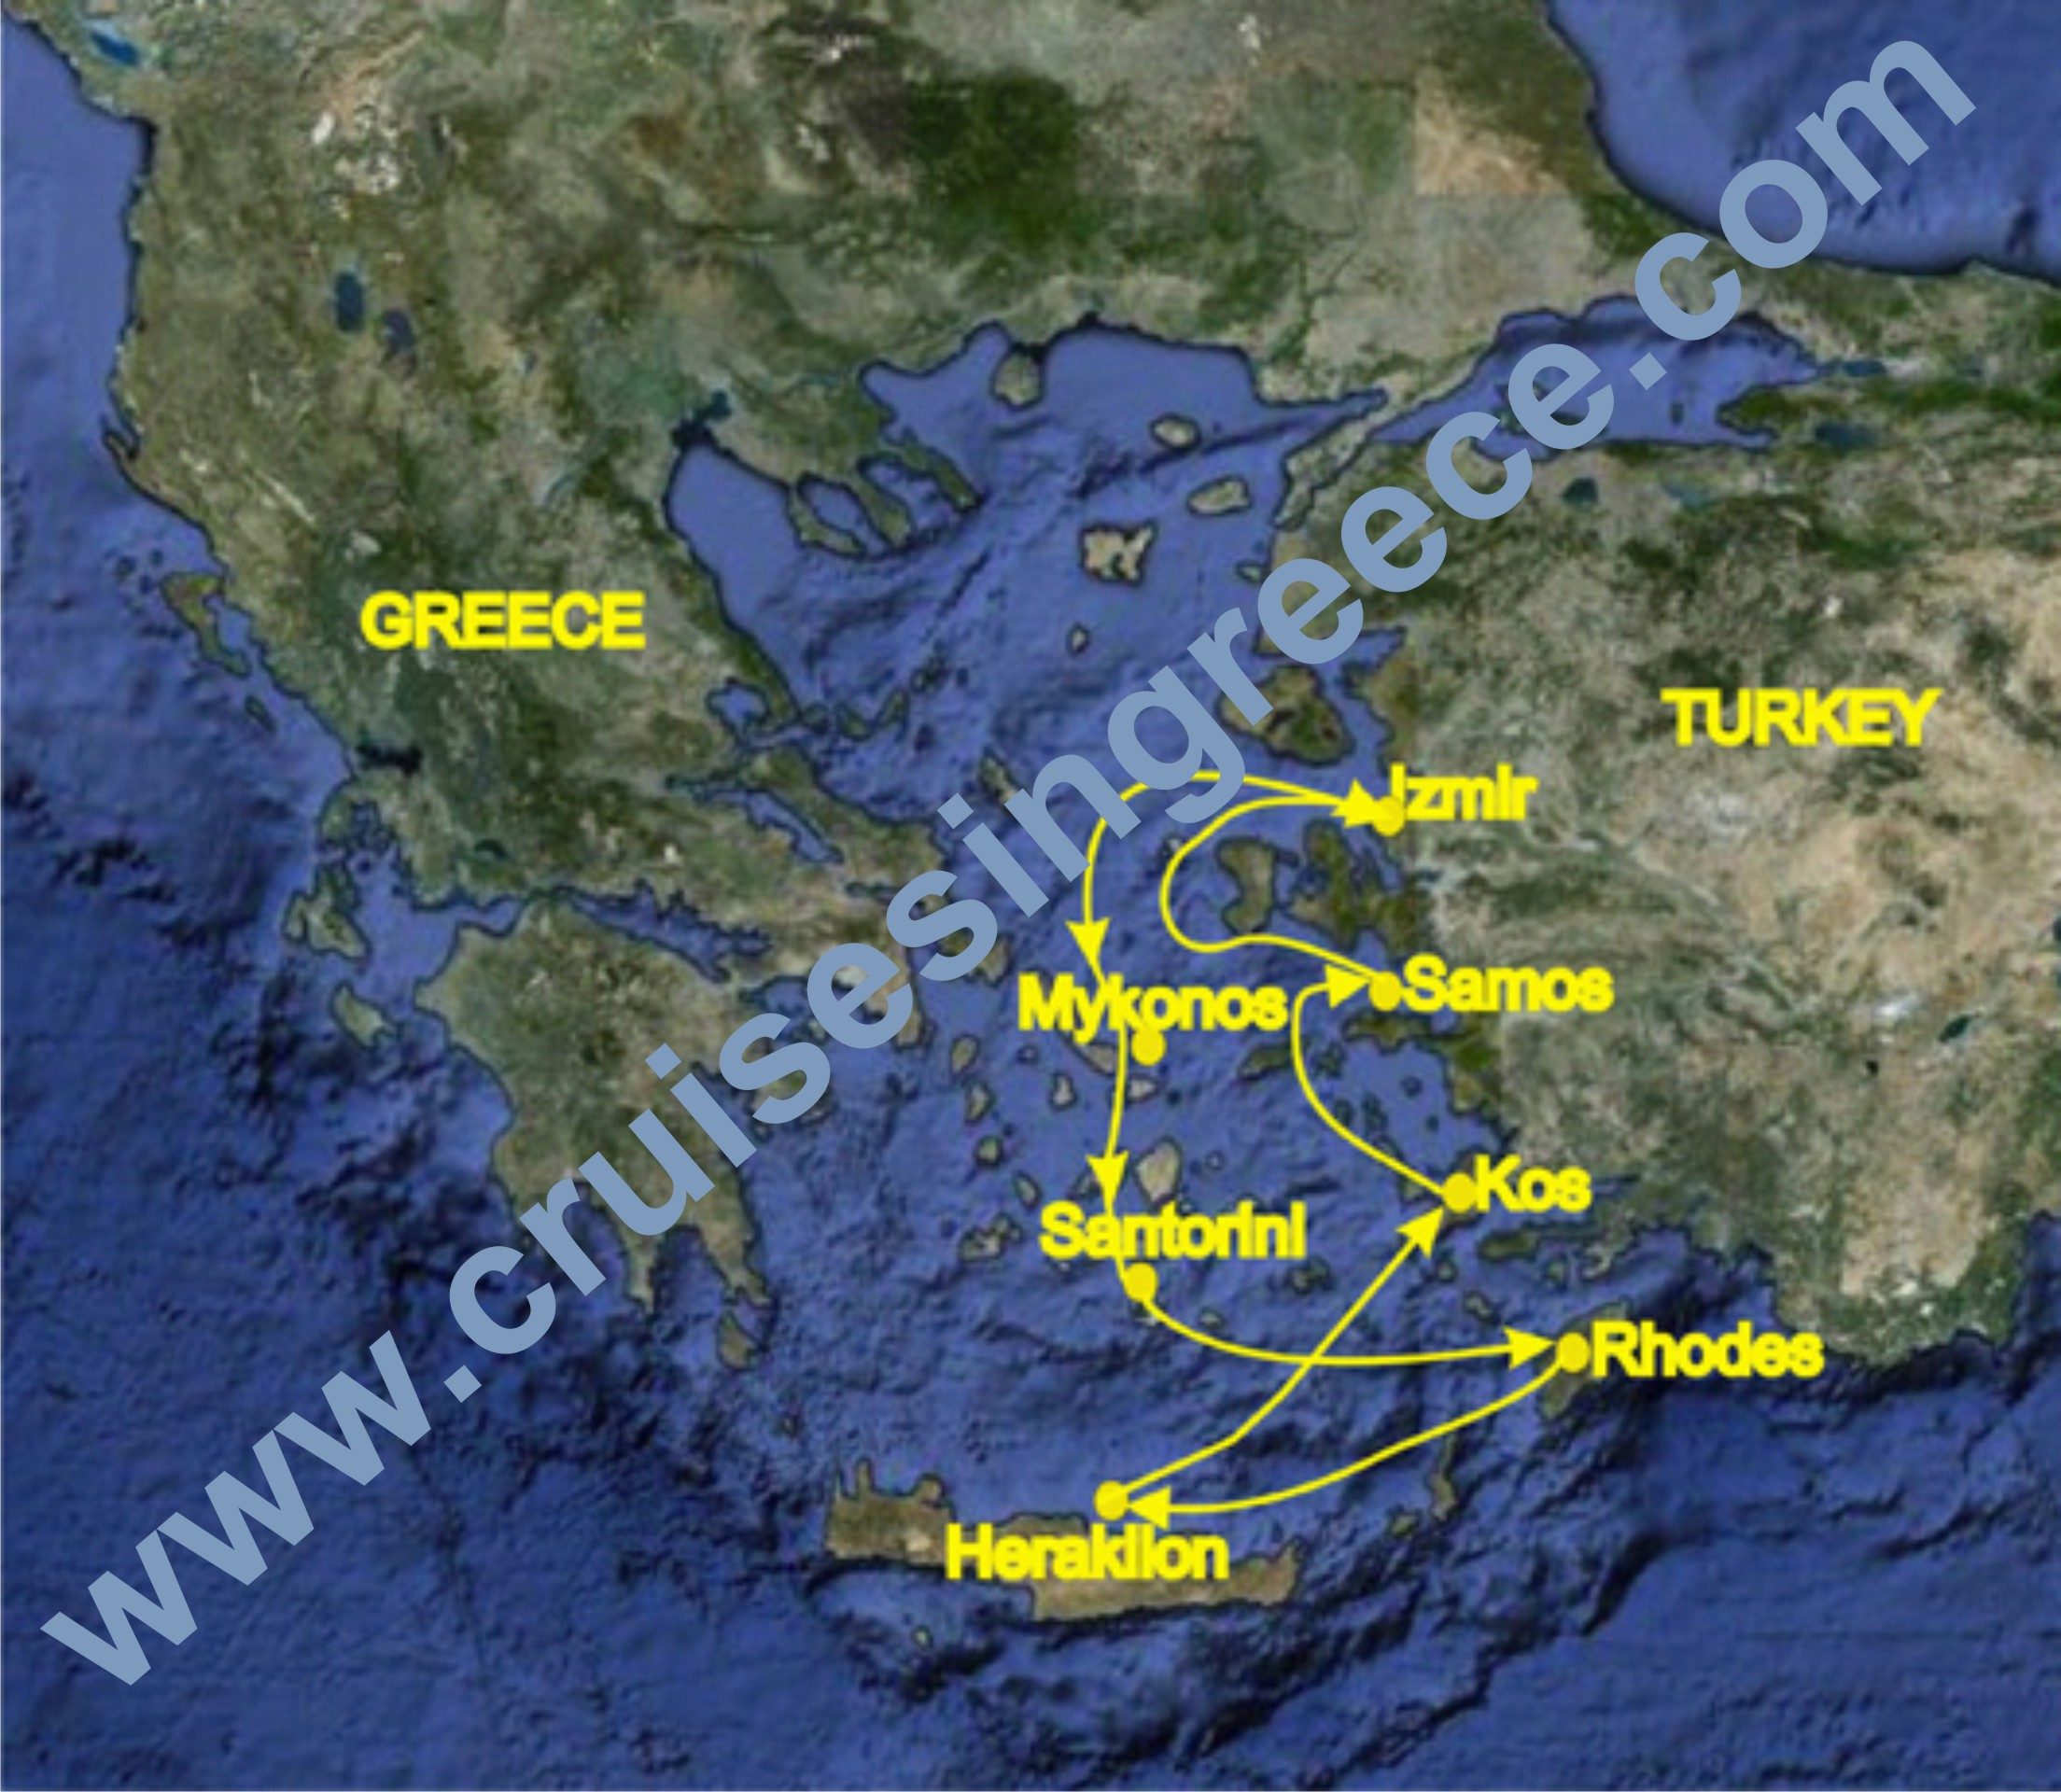 8Days-costa-atlantica-greekislands_izmir.htm